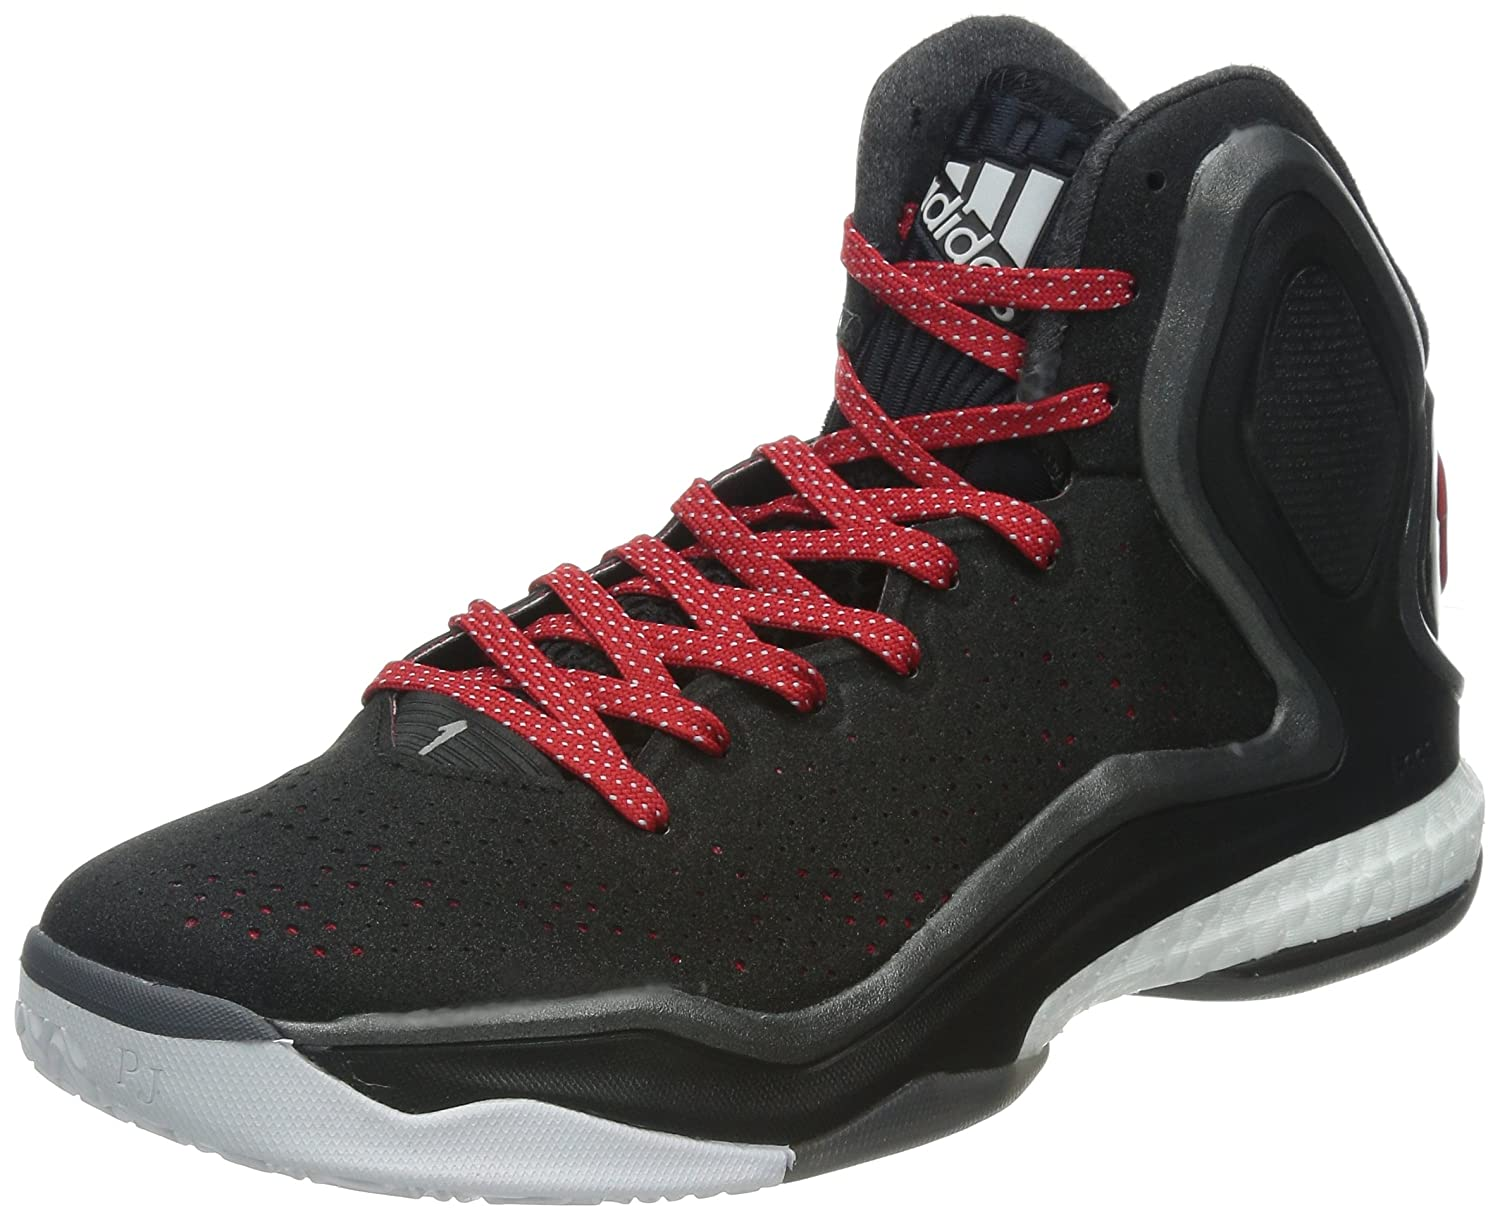 eea3337b07 Amazon.com | adidas D Rose 5 Boost Mens Basketball Sneakers/Shoes-Black-19  | Basketball